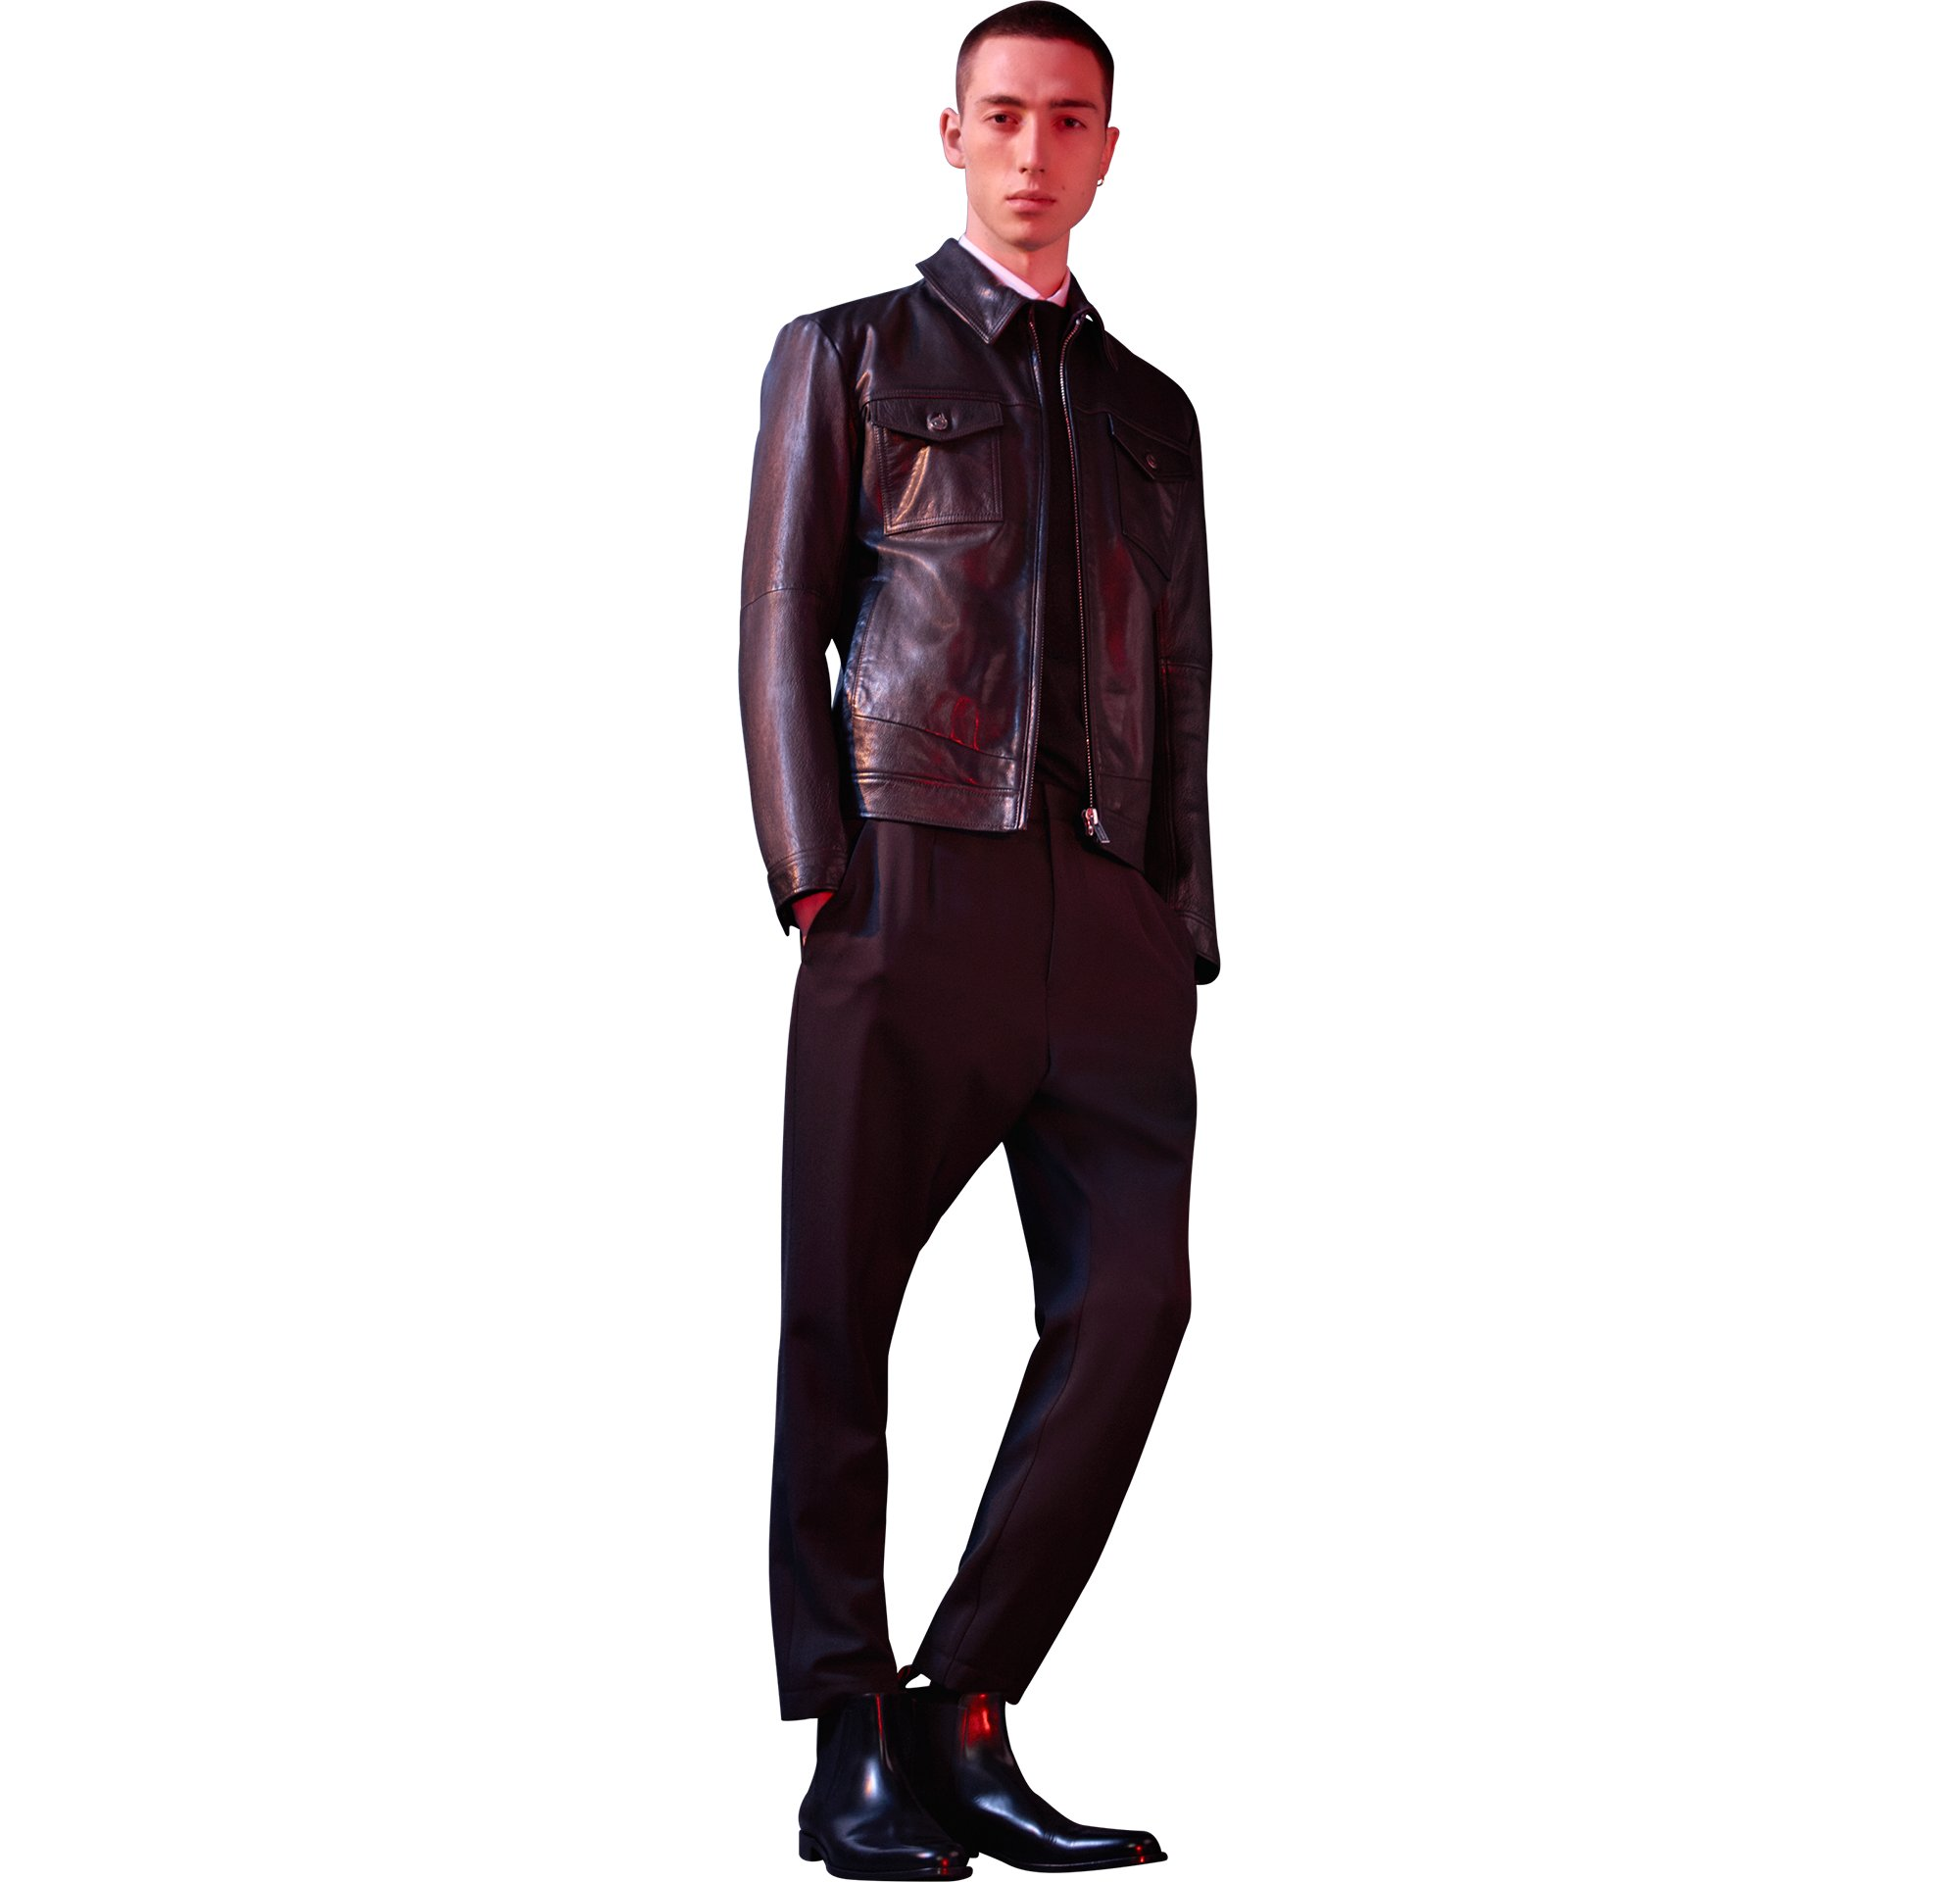 Leather jacket, trousers  by HUGO Menswear